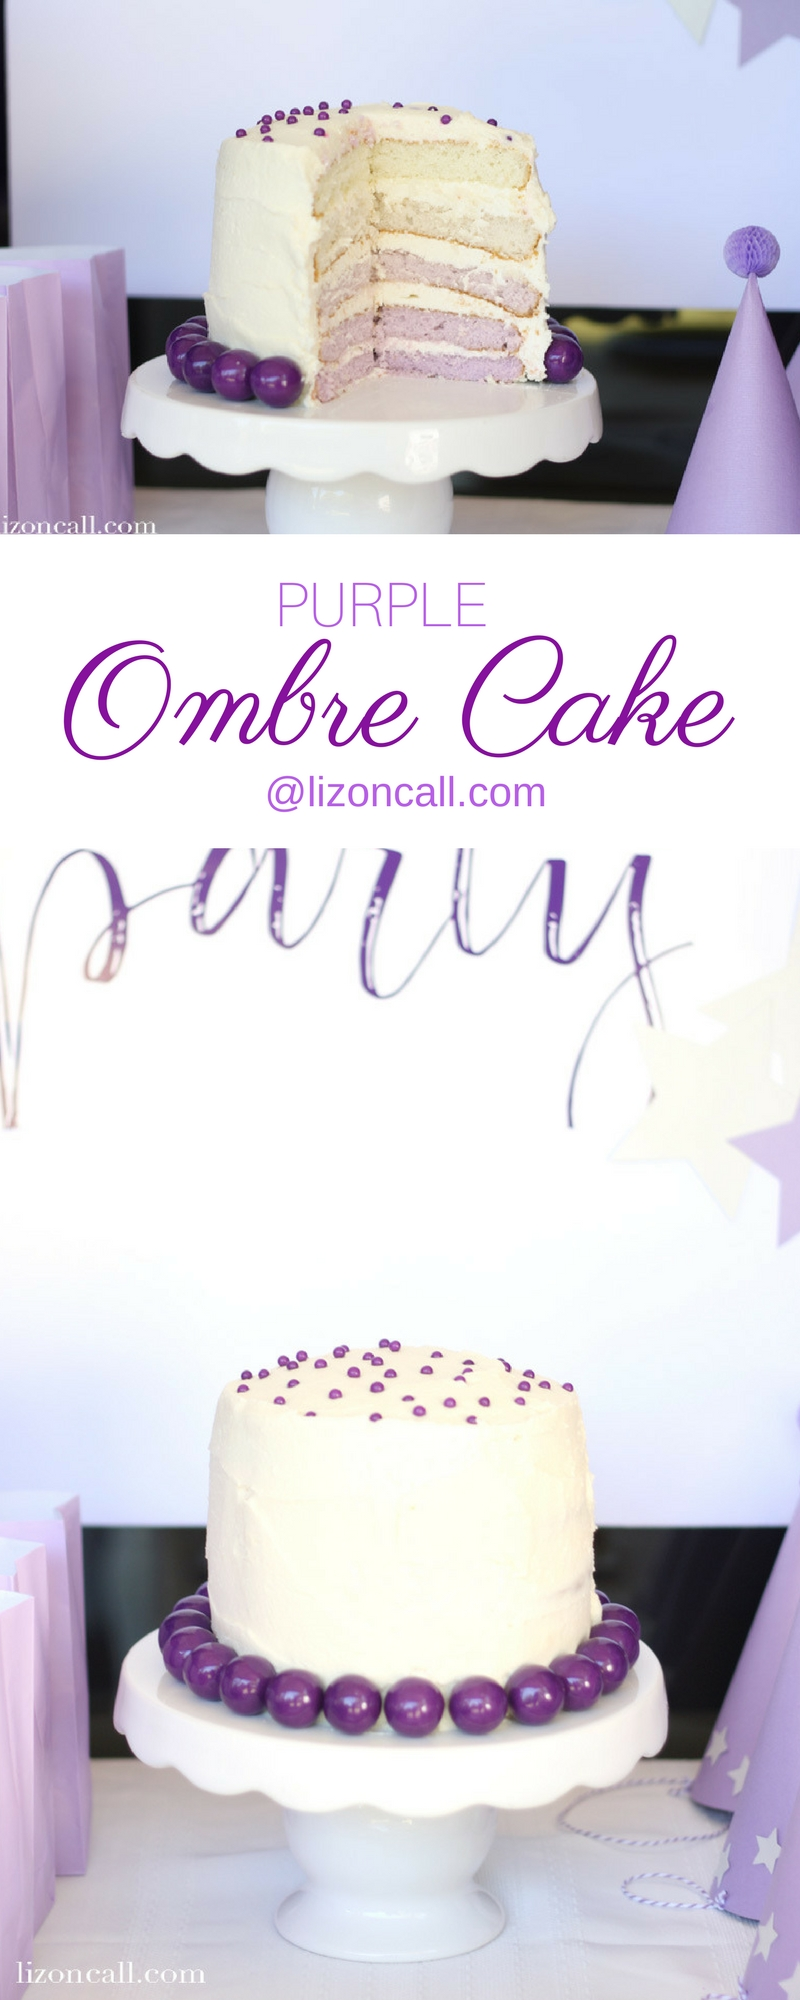 This purple ombre cake is easy to make, has a delicious buttercream frosting, and was a hit at our purple birthday party!